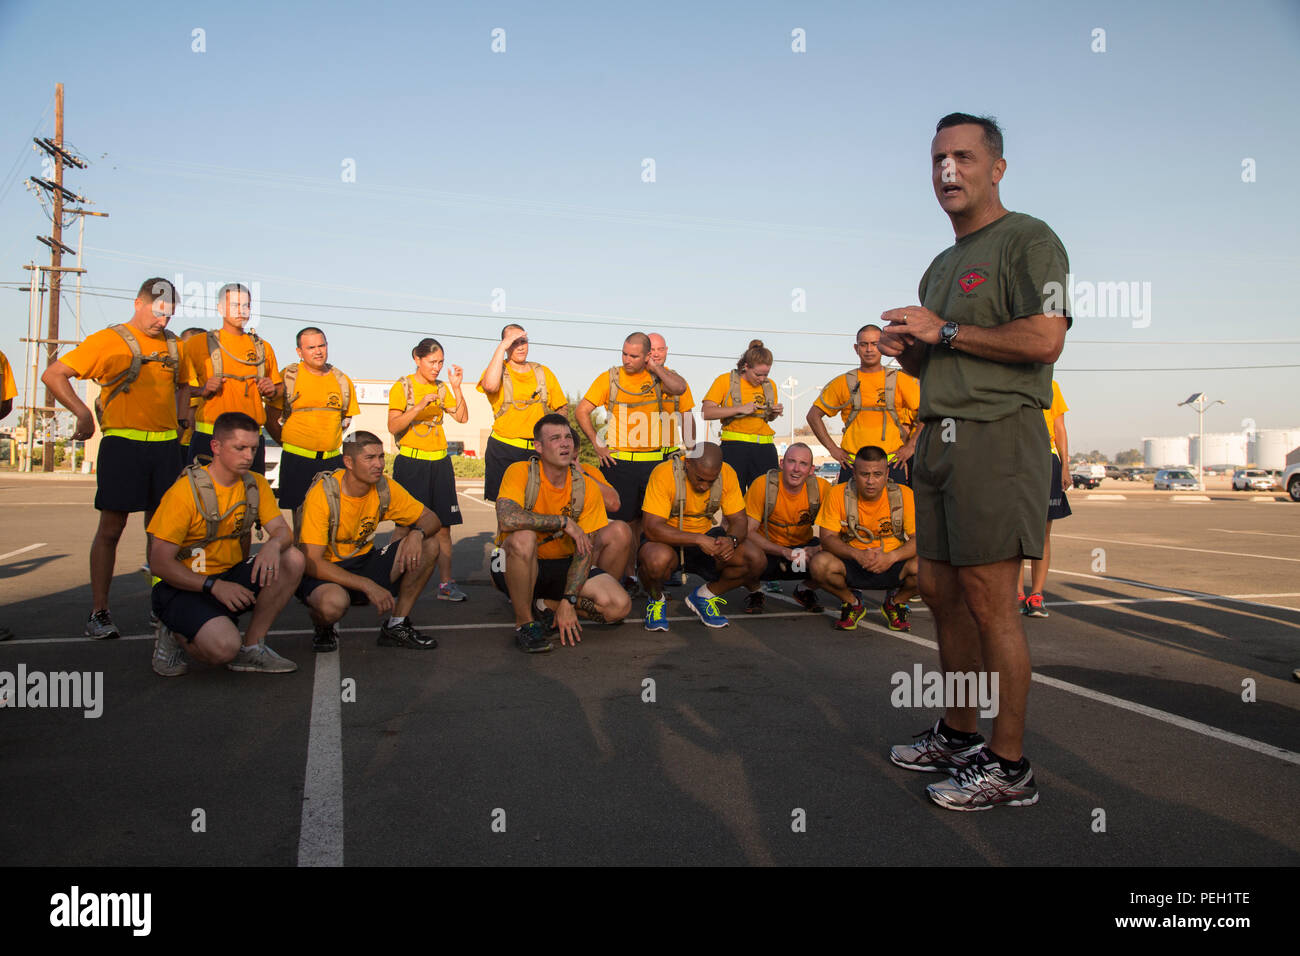 U.S. Marine Corps Maj. Gen. Michael Rocco, the commanding general of 3d Marine Aircraft Wing, gives his remarks after a run with all I Marine Expeditionary Force and Marine Corps Base Camp Pendleton Hospital Chief Petty Officer Selectees aboard Marine Corps Air Station Miramar, San Diego, Calif., Aug. 27, 2015. The run was conducted to build camaraderie and receive mentorship and guidance from the 3d MAW commanding general and assistant wing commander. (U.S. Marine Corps photo by Lance Cpl. Trever Statz/Released) - Stock Image